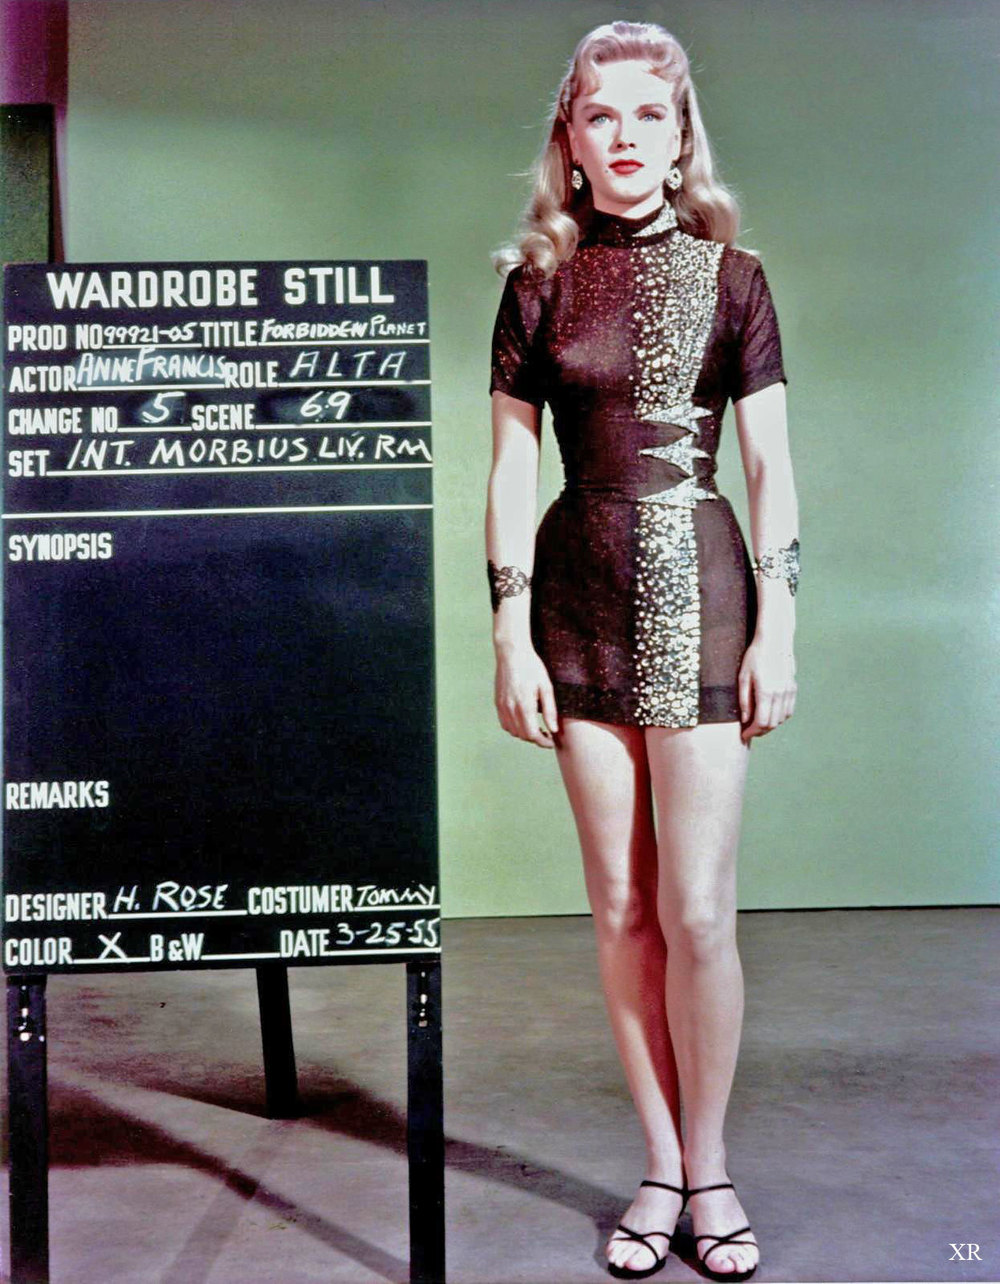 Anne Francis, Forbidden Planet costume fitting